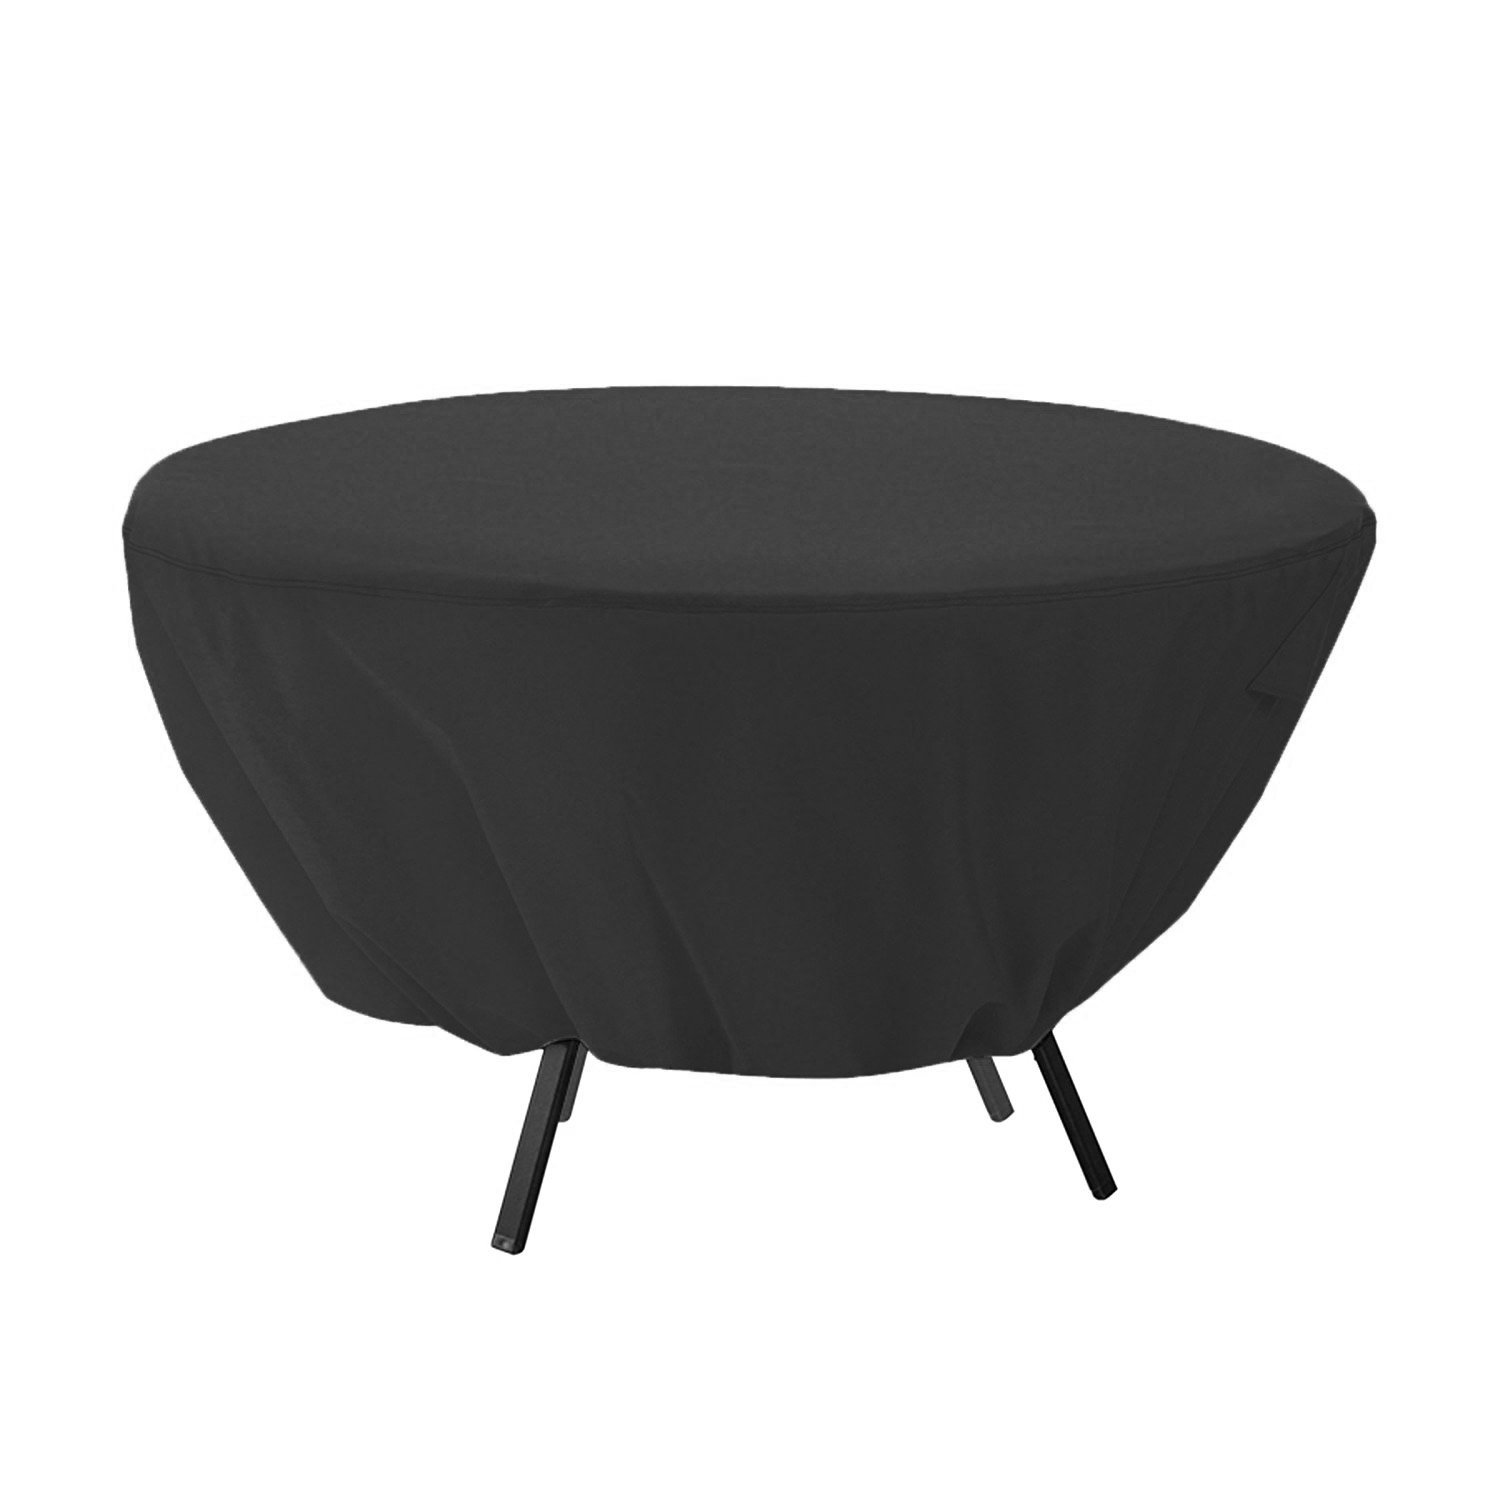 Mitef Waterproof Round Patio Table Cover – Outdoor Furniture Cover 50 inch,Black